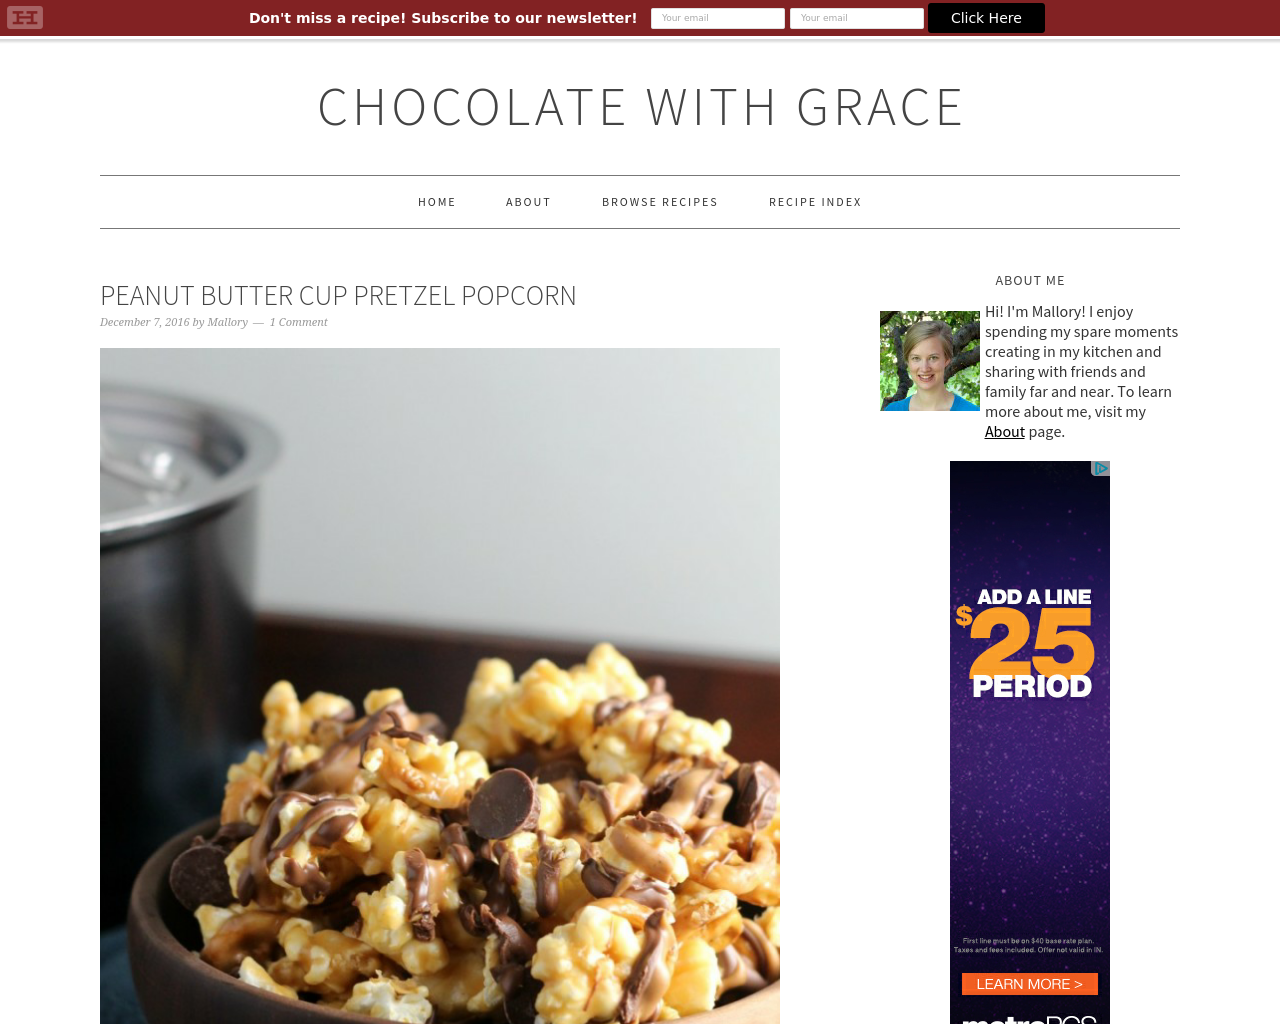 Chocolate-with-Grace-Advertising-Reviews-Pricing